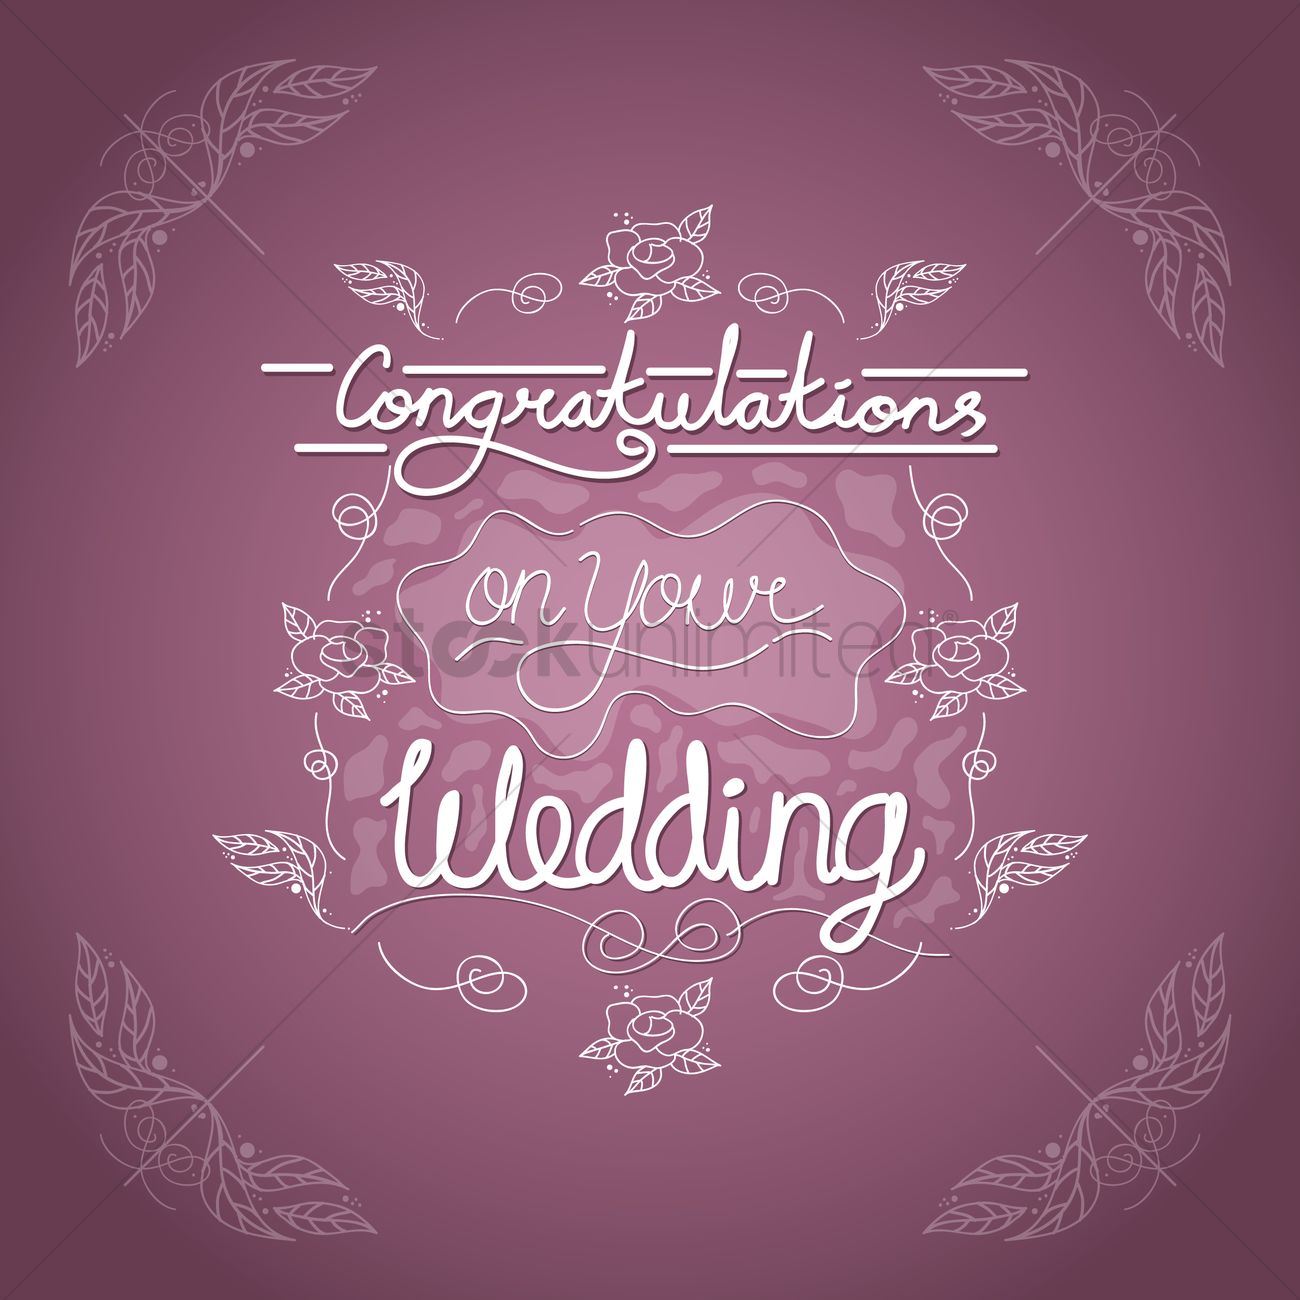 Congratulations on your wedding card Vector Image 1707652